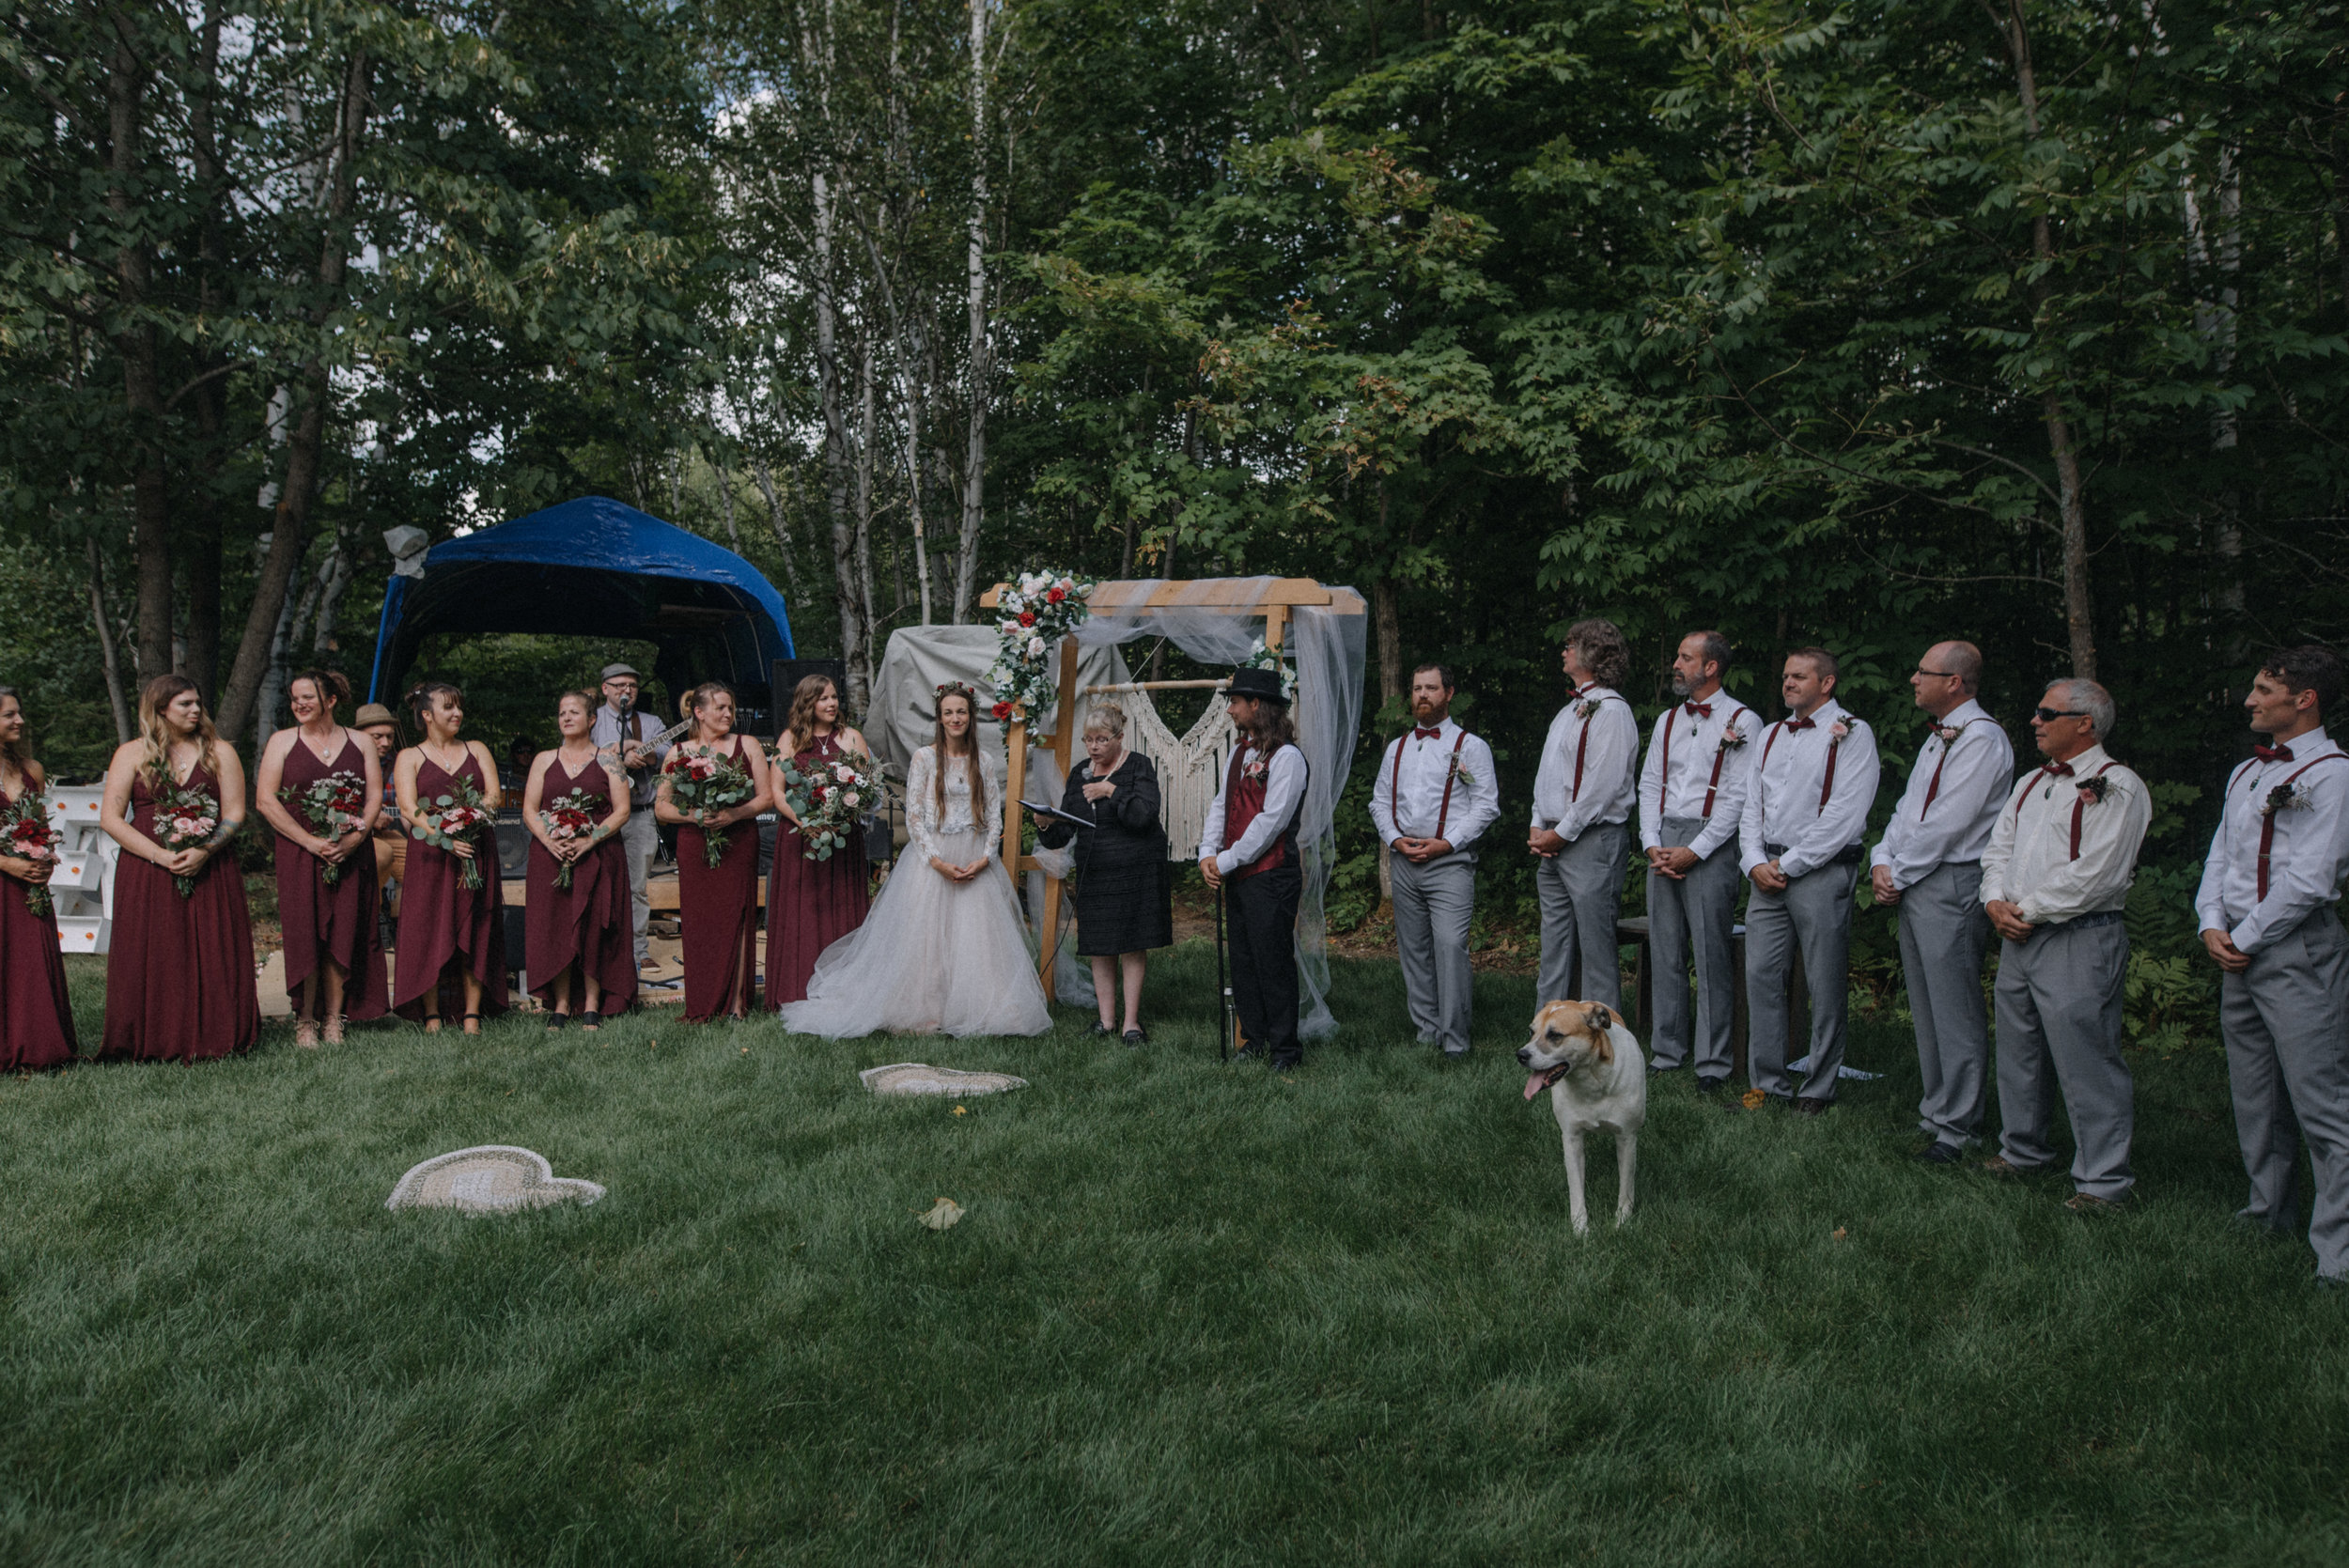 ottawa_wedding_photographer_gatineau_photographe_mariage_documentary_candid_photojournalist_natural_raw_boho_wedding_backyard (16).JPG